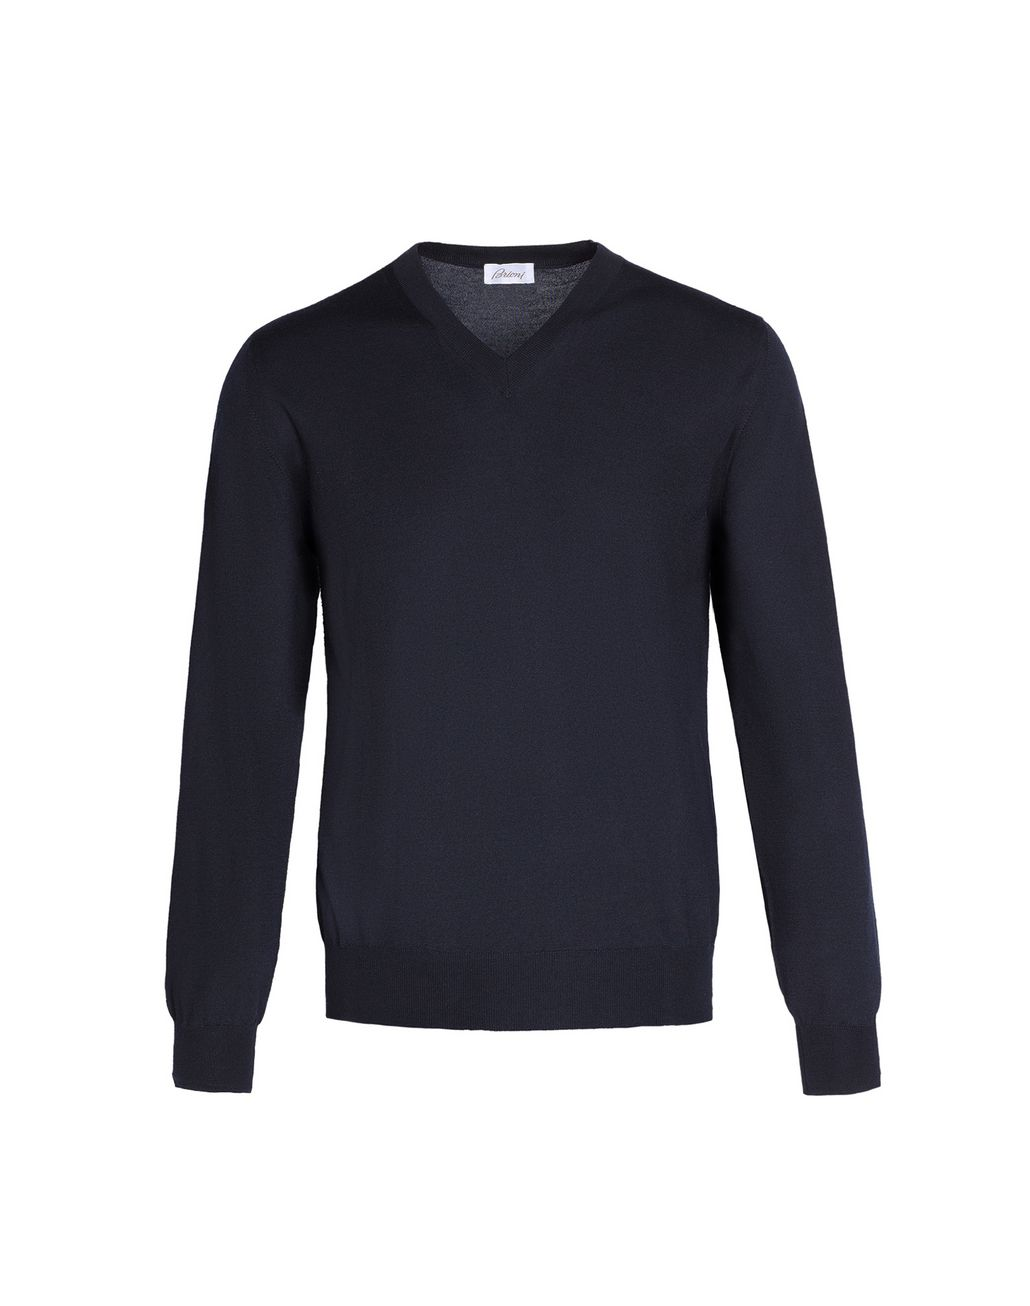 BRIONI 'Essential' Navy Blue V-Neck Sweater Knitwear Man f